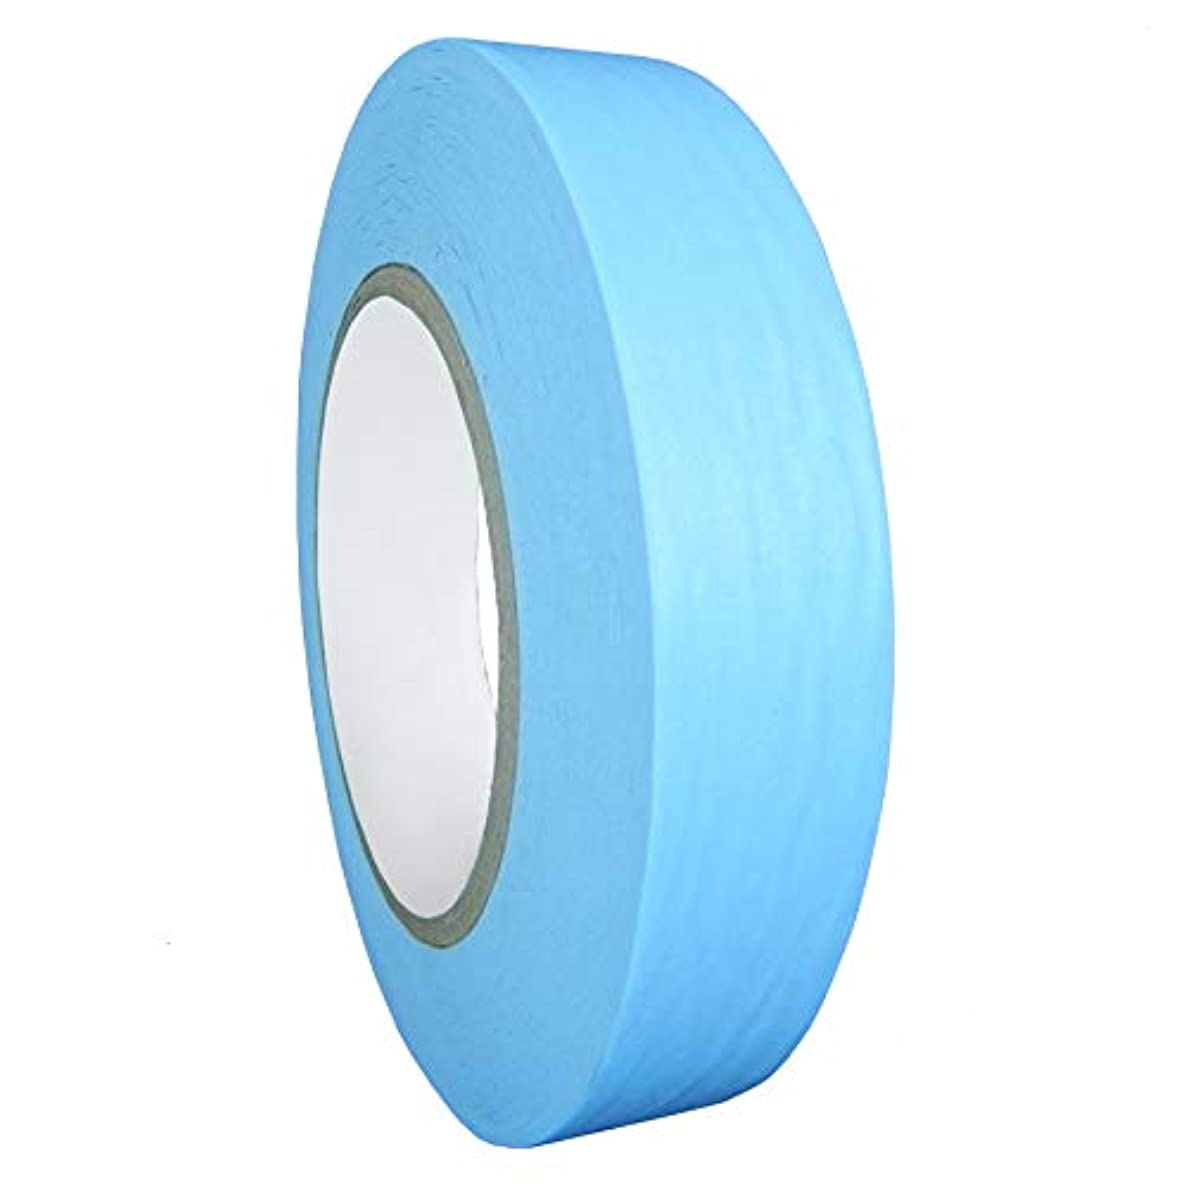 WOD CFB-60 Console Artist Tape Light Blue - Flatback Paper Marking/Labeling Tape Residue Free - Acid Free (Available in Multiple Sizes & Colors): 1/2 in. X 60 Yds (Pack of 1)